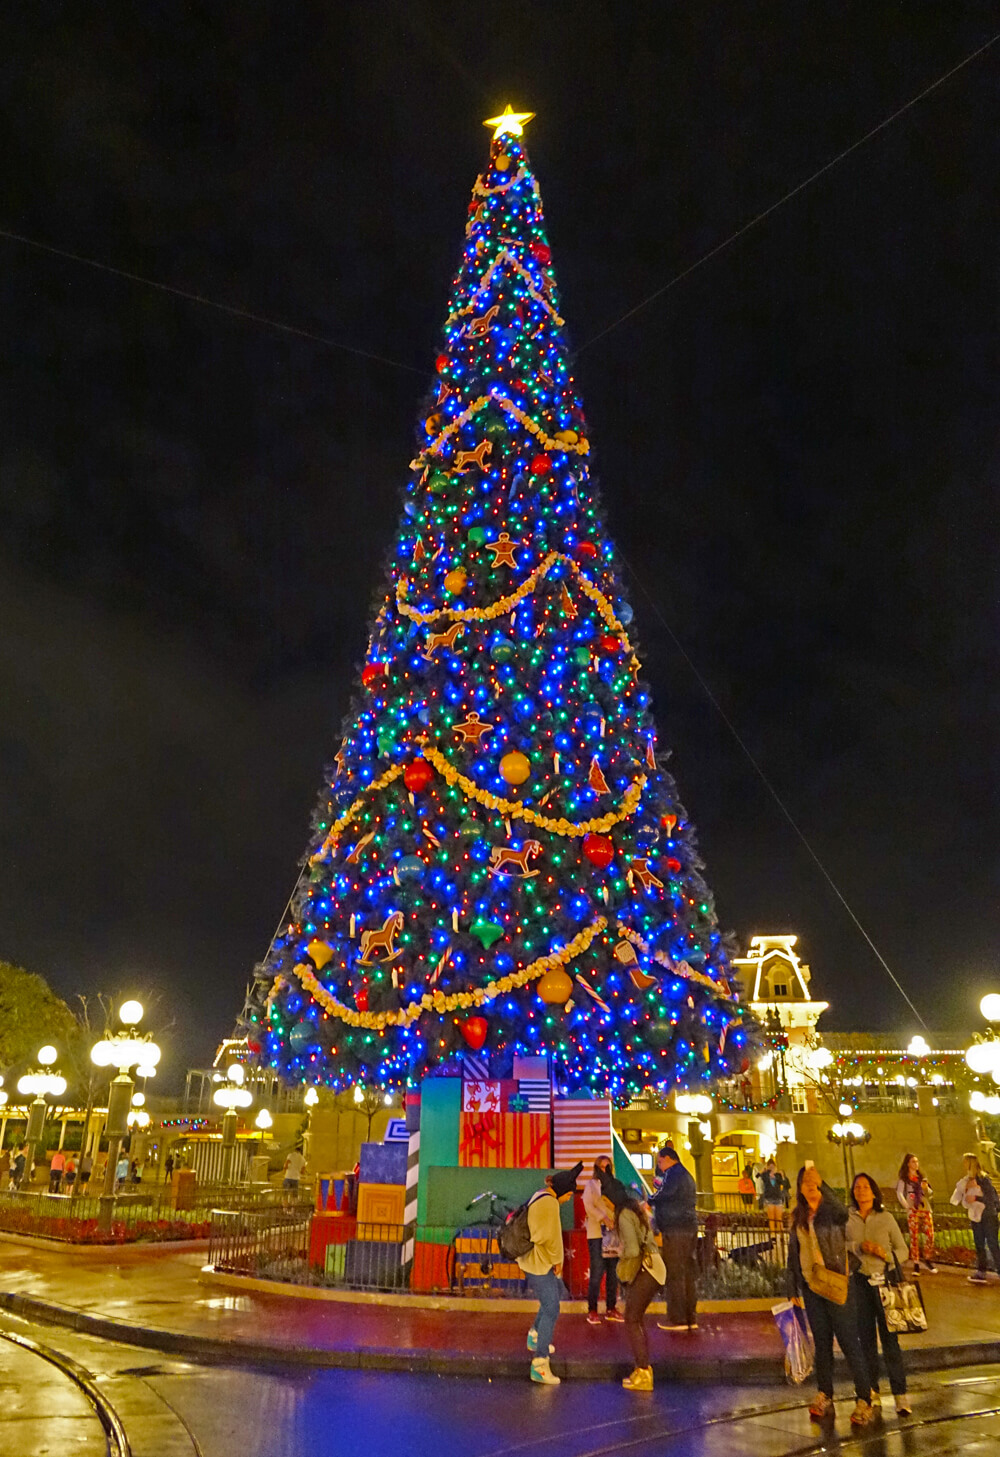 disney world holiday events 2018 magic kingdom tree decorating is - When Does Disney World Decorate For Christmas 2017